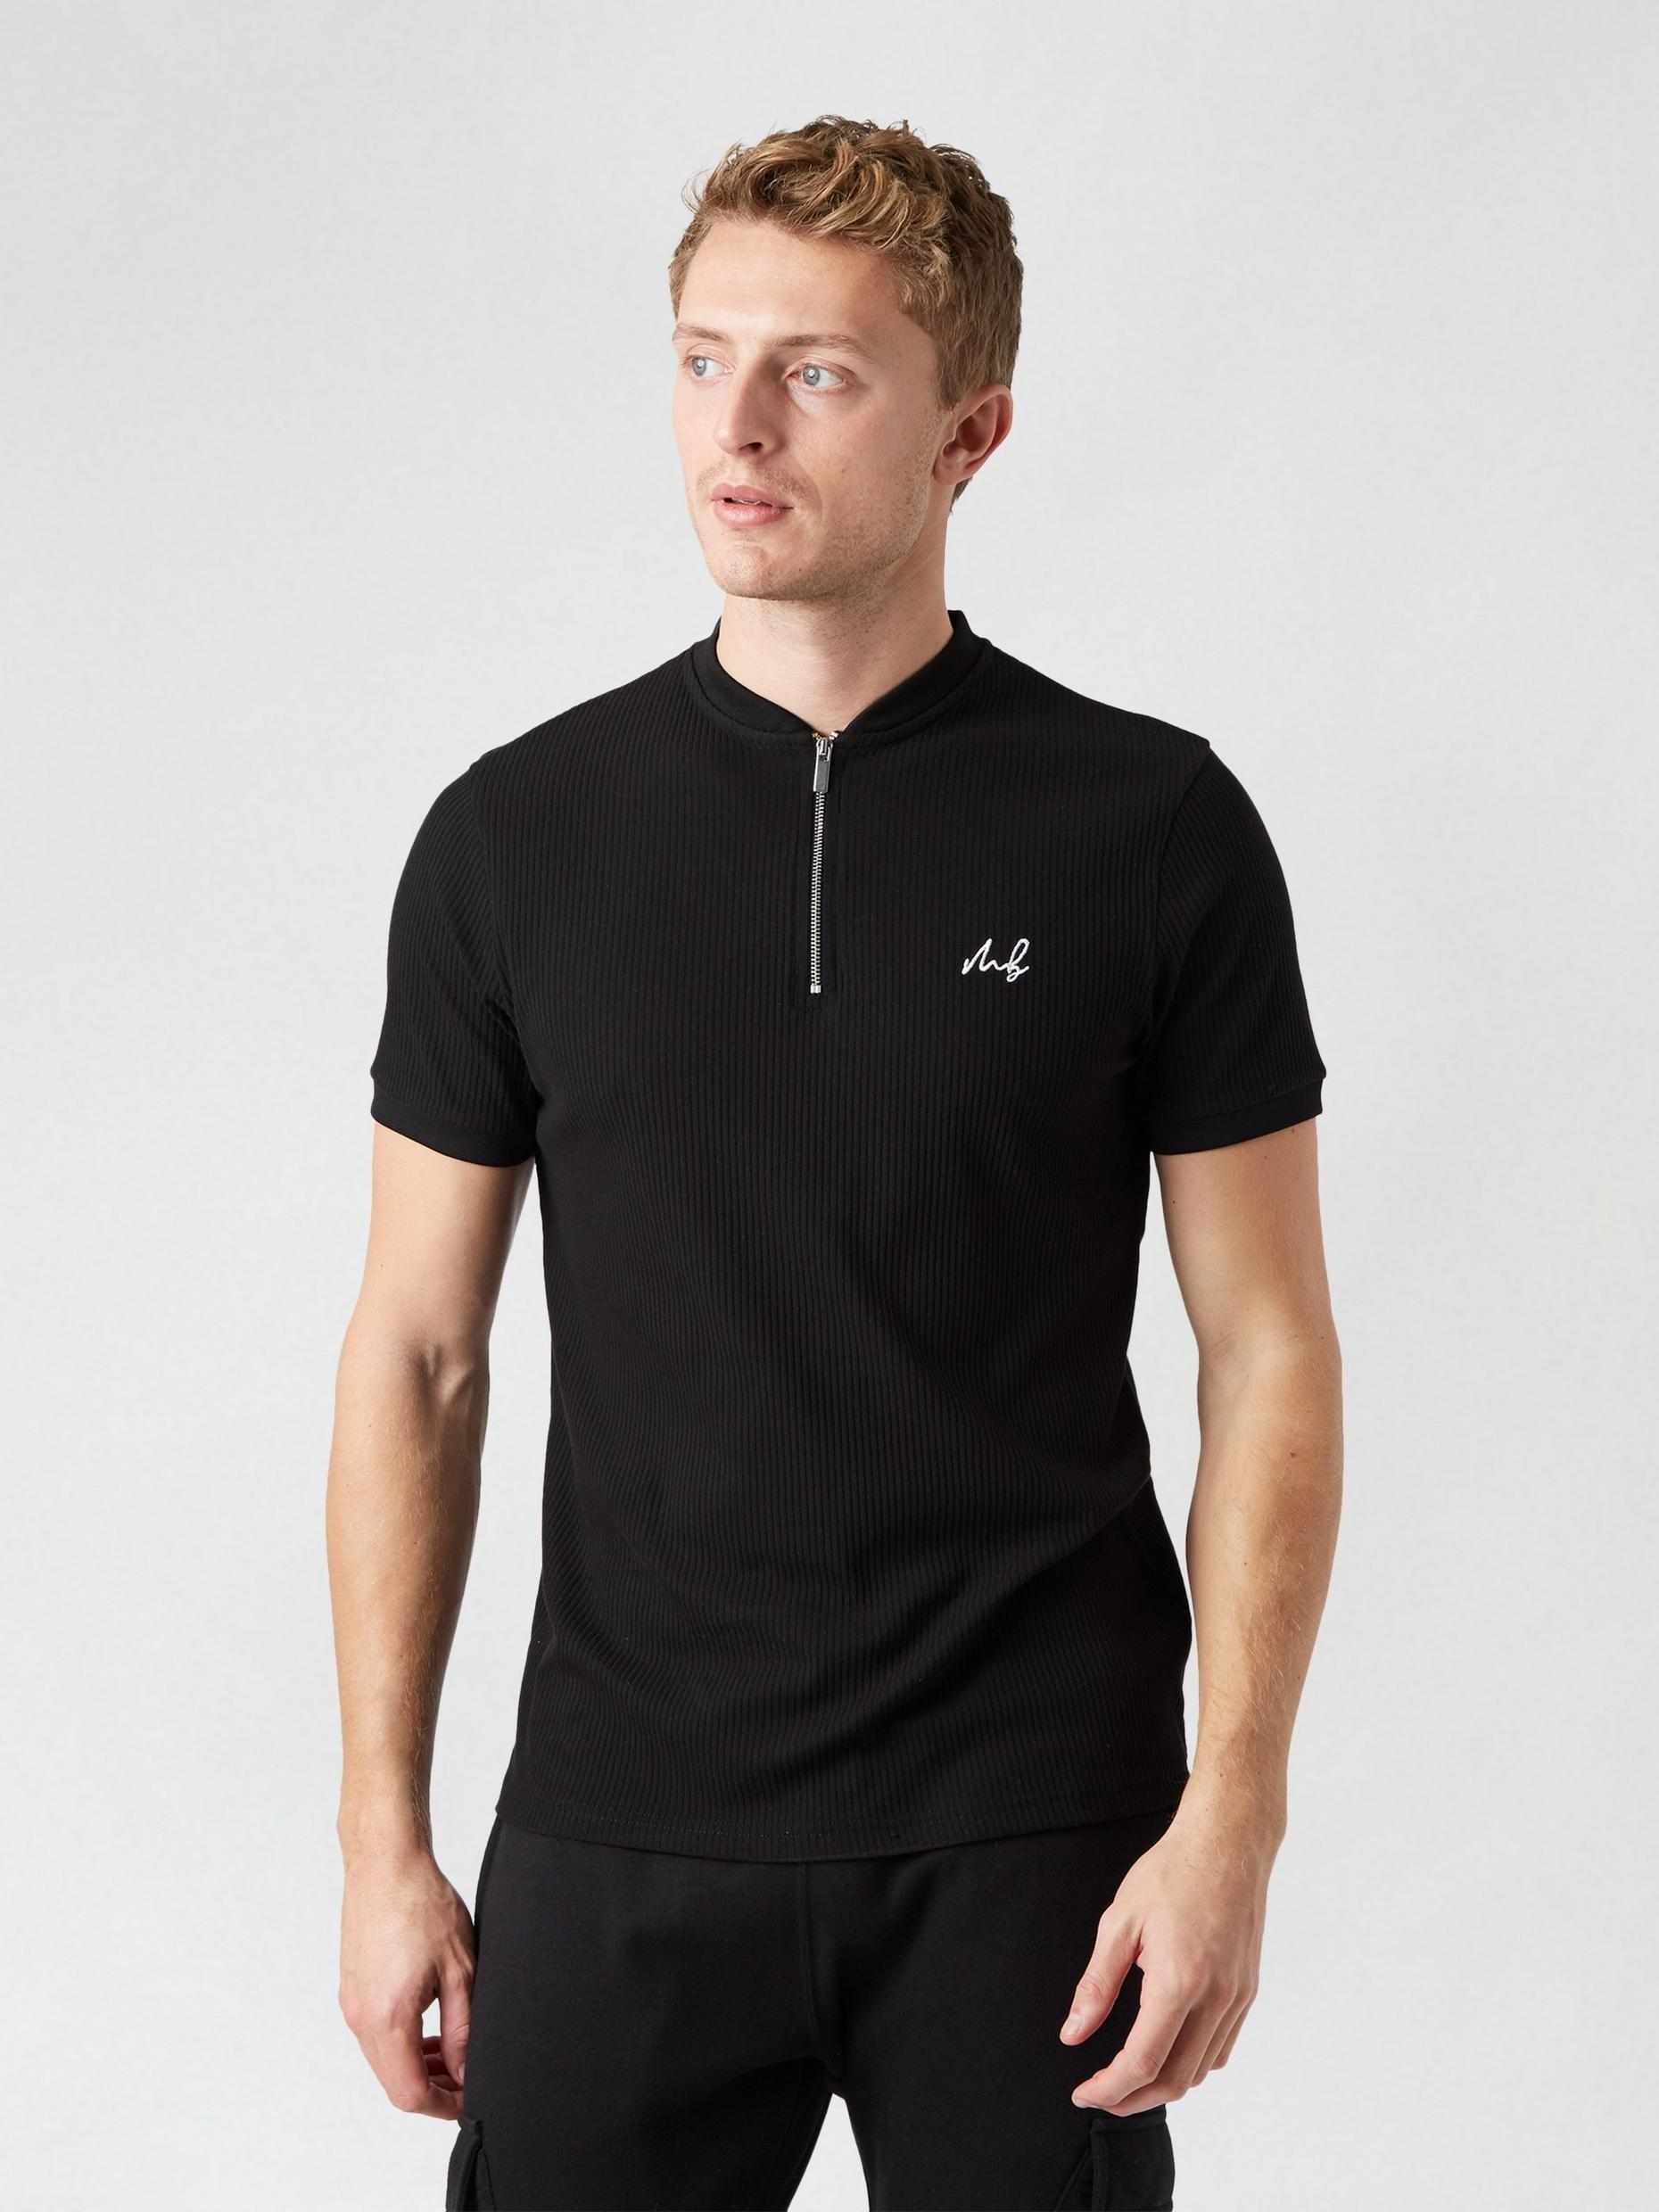 MB Collection Black Quarter Zip Baseball Top